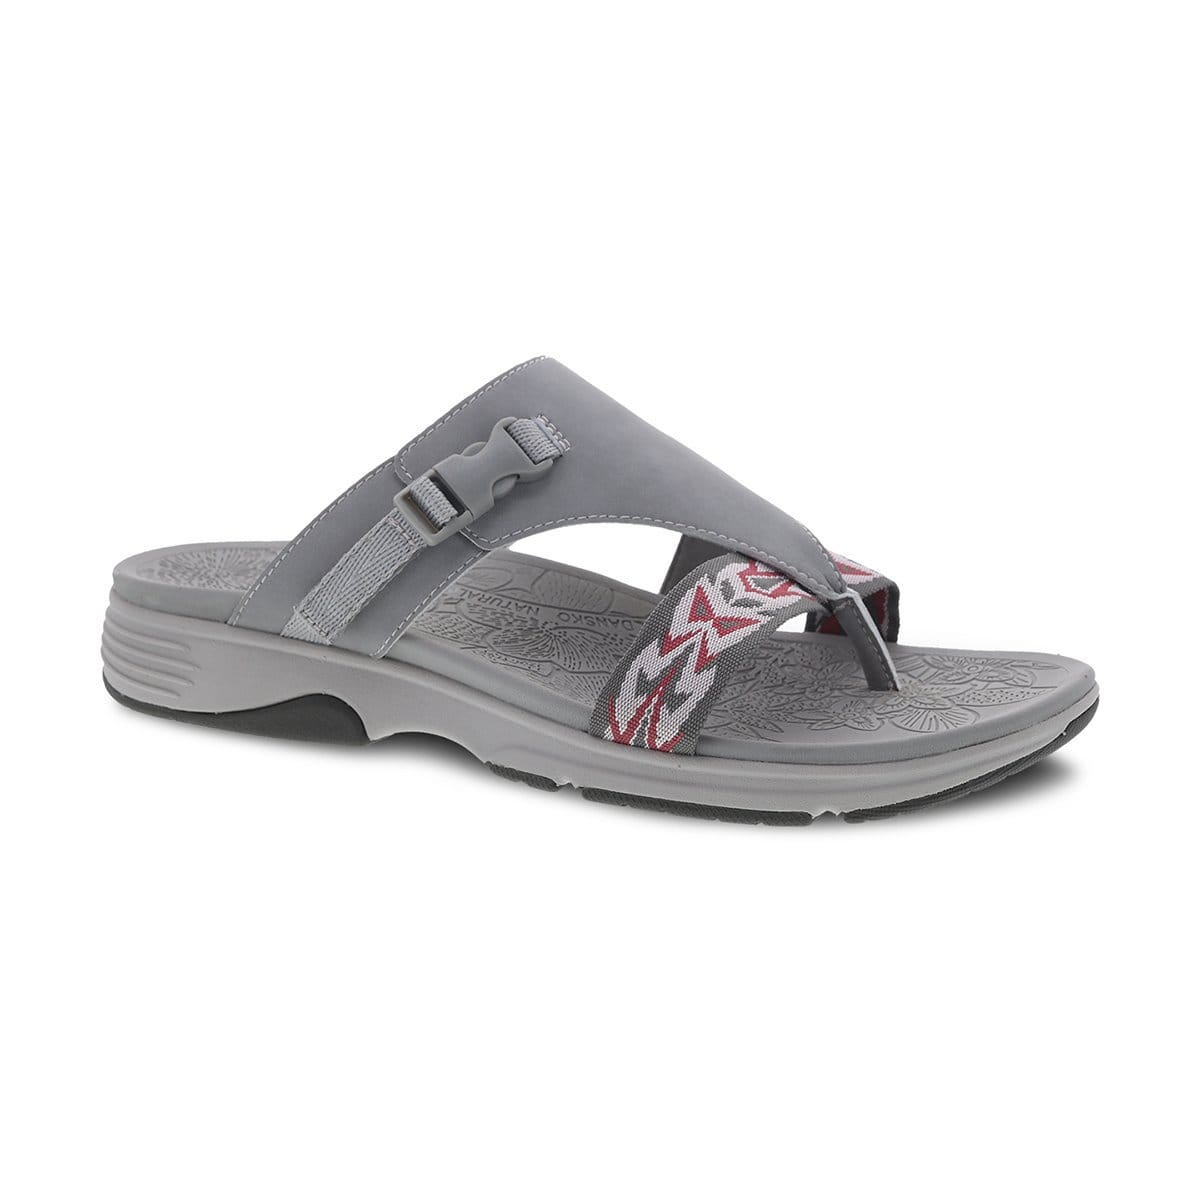 454b72893f6 Dansko Alecia Women s Synthetic Adjustable Slide Thong Sandal Shoe ...